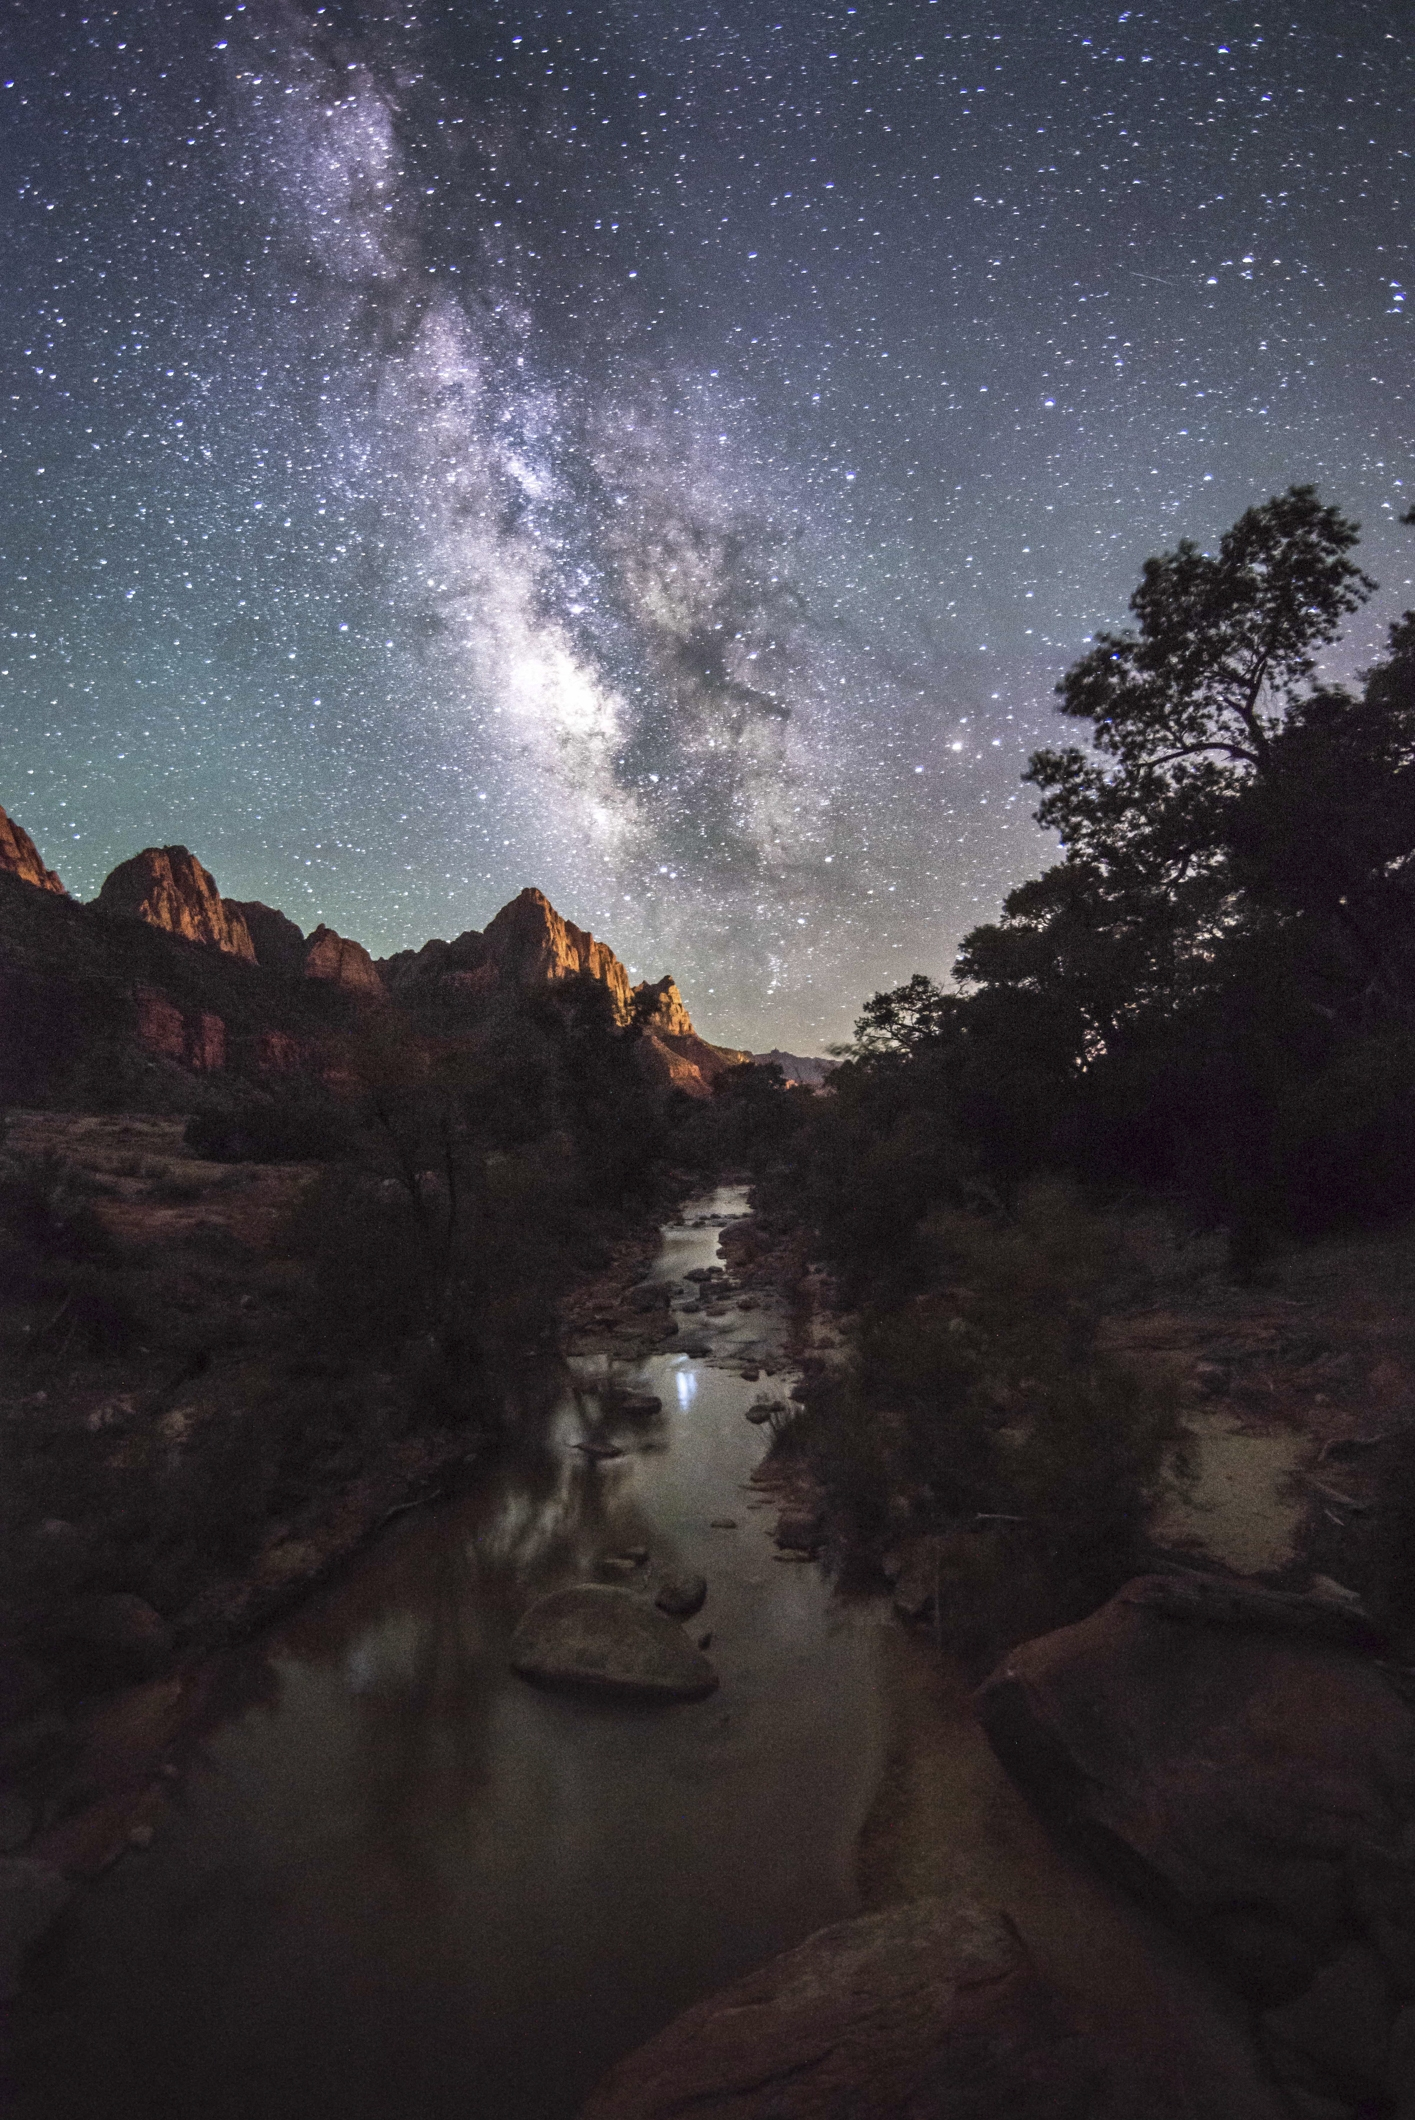 The Watchman of Zion with Milky Way Galaxy and Virgin River